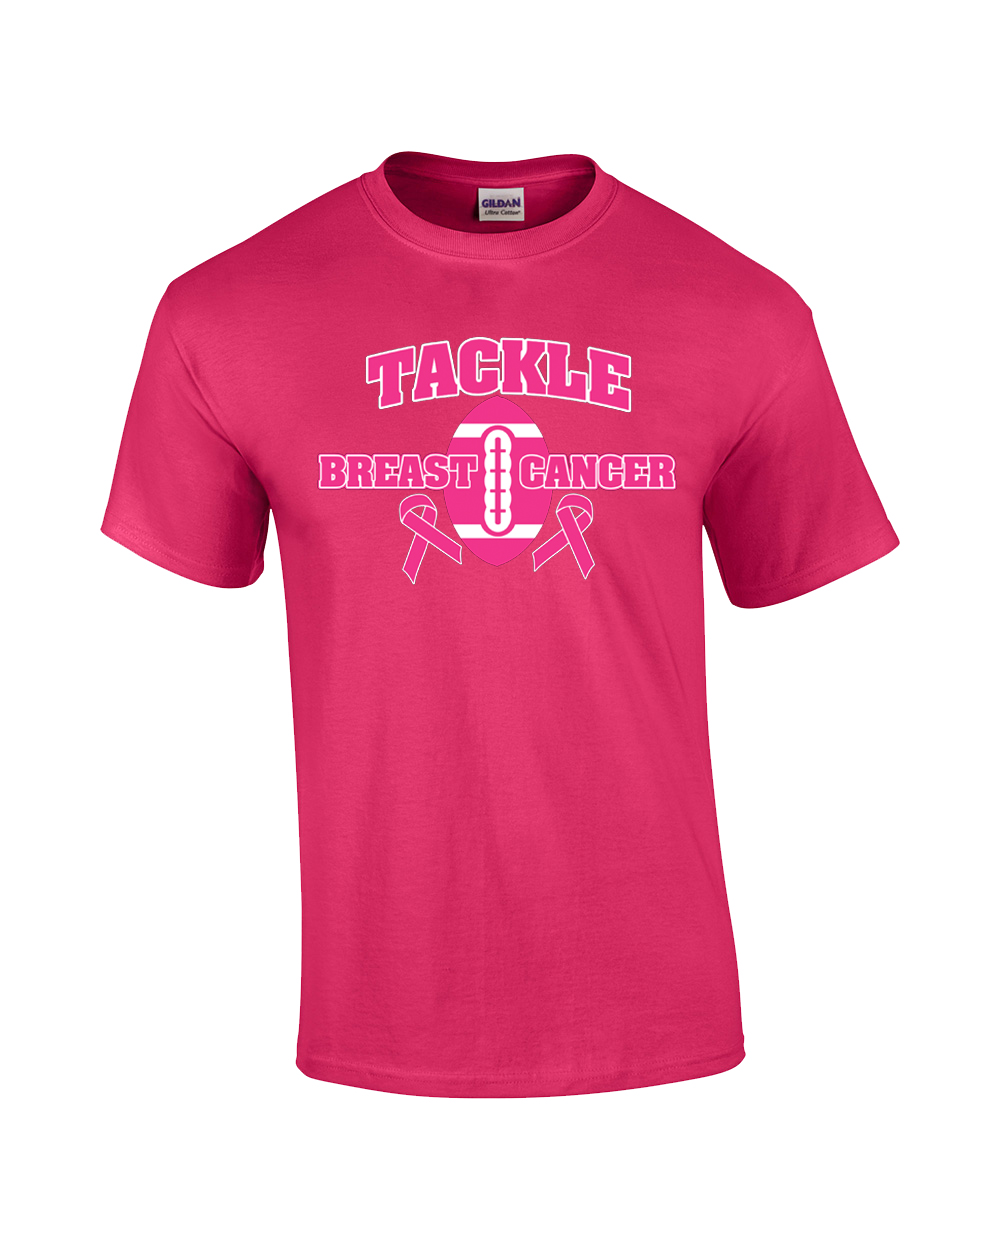 T shirts for breast cancer awareness sorry